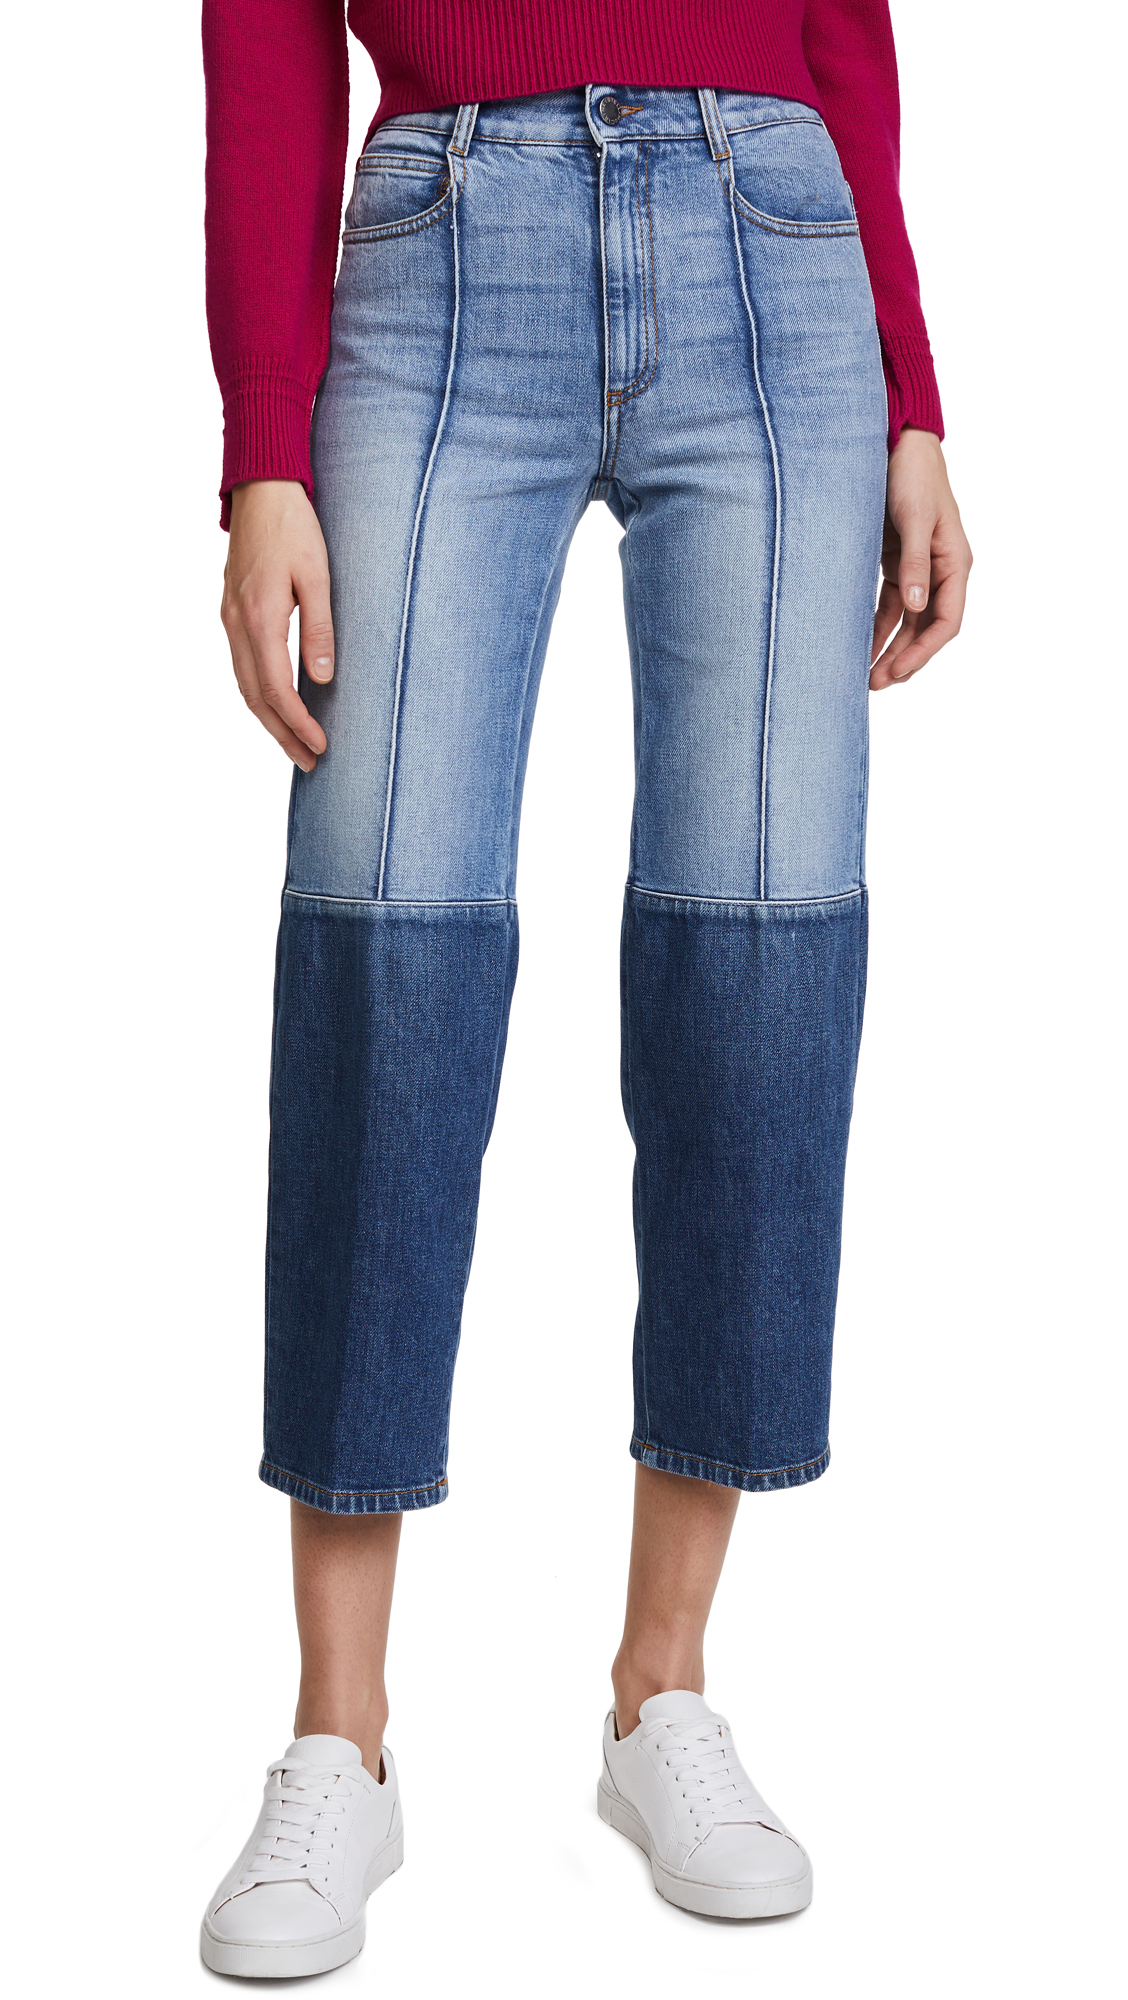 Stella McCartney The High Waist Two Tone Jeans In Blue